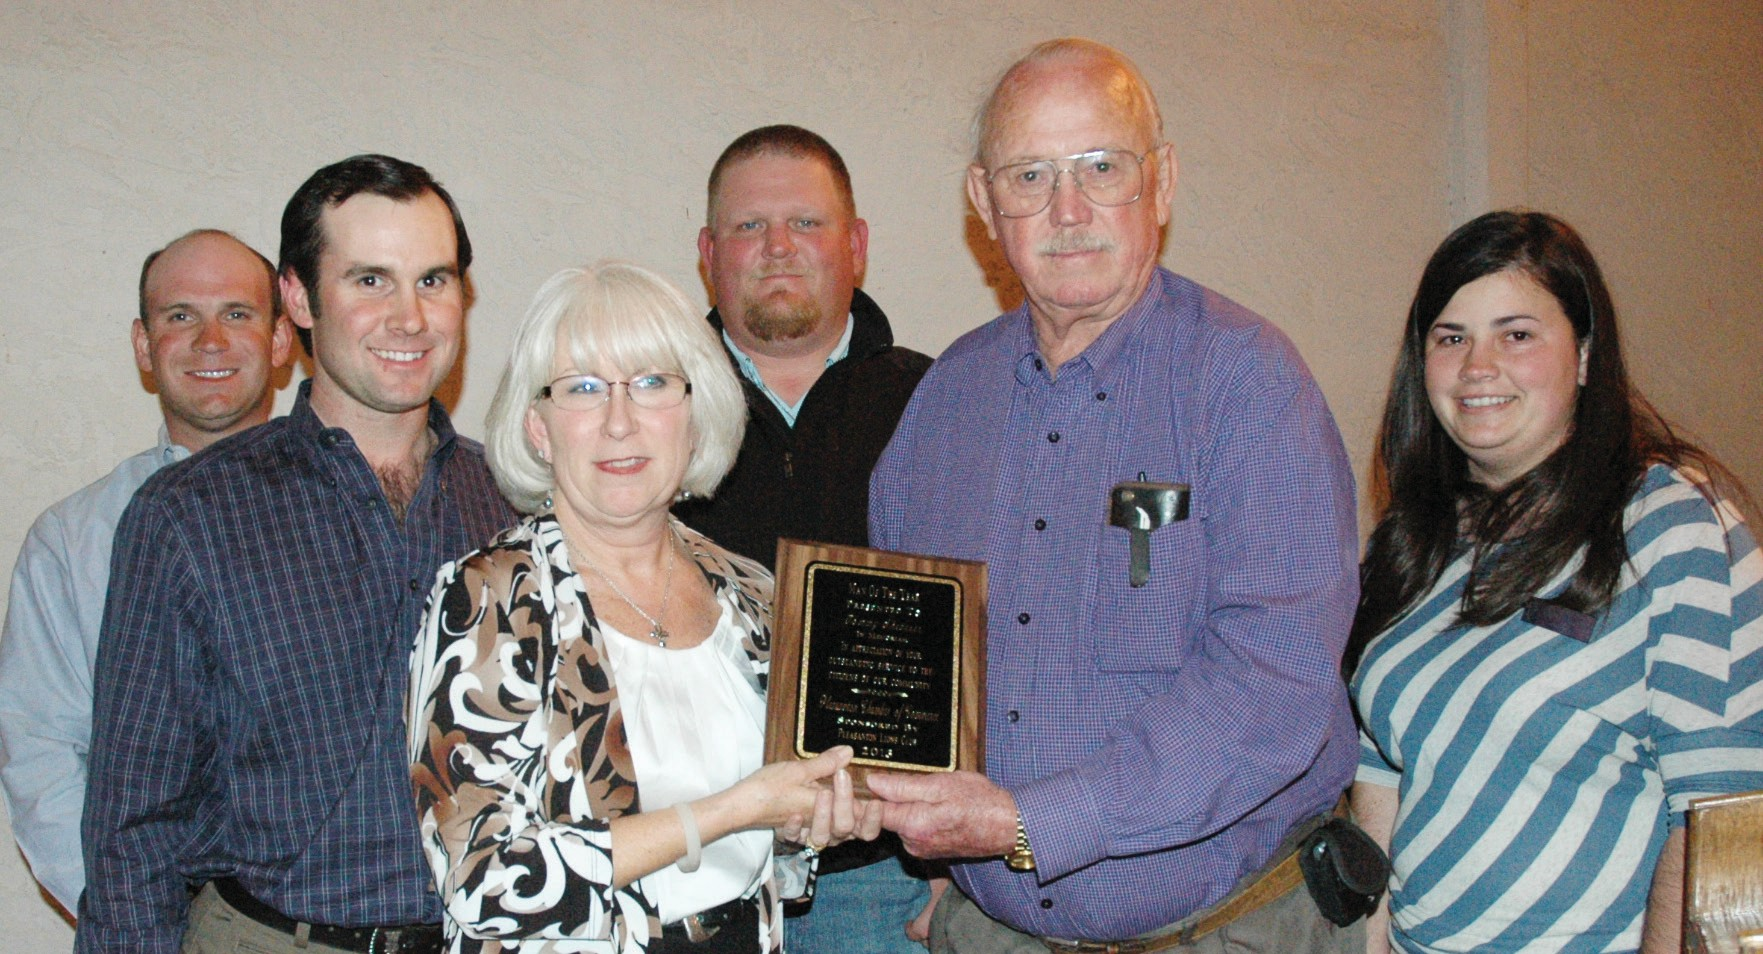 Matthew, Wesley and Sharon Shearrer (from left)accept the Man of the Year award in memory of their father and husband, Tommy Shearrer, from Lions Club member Wilbur Palmer. Chamber 1st Vice President Wade McBee and 2nd Vice President Candace Vrana assist.